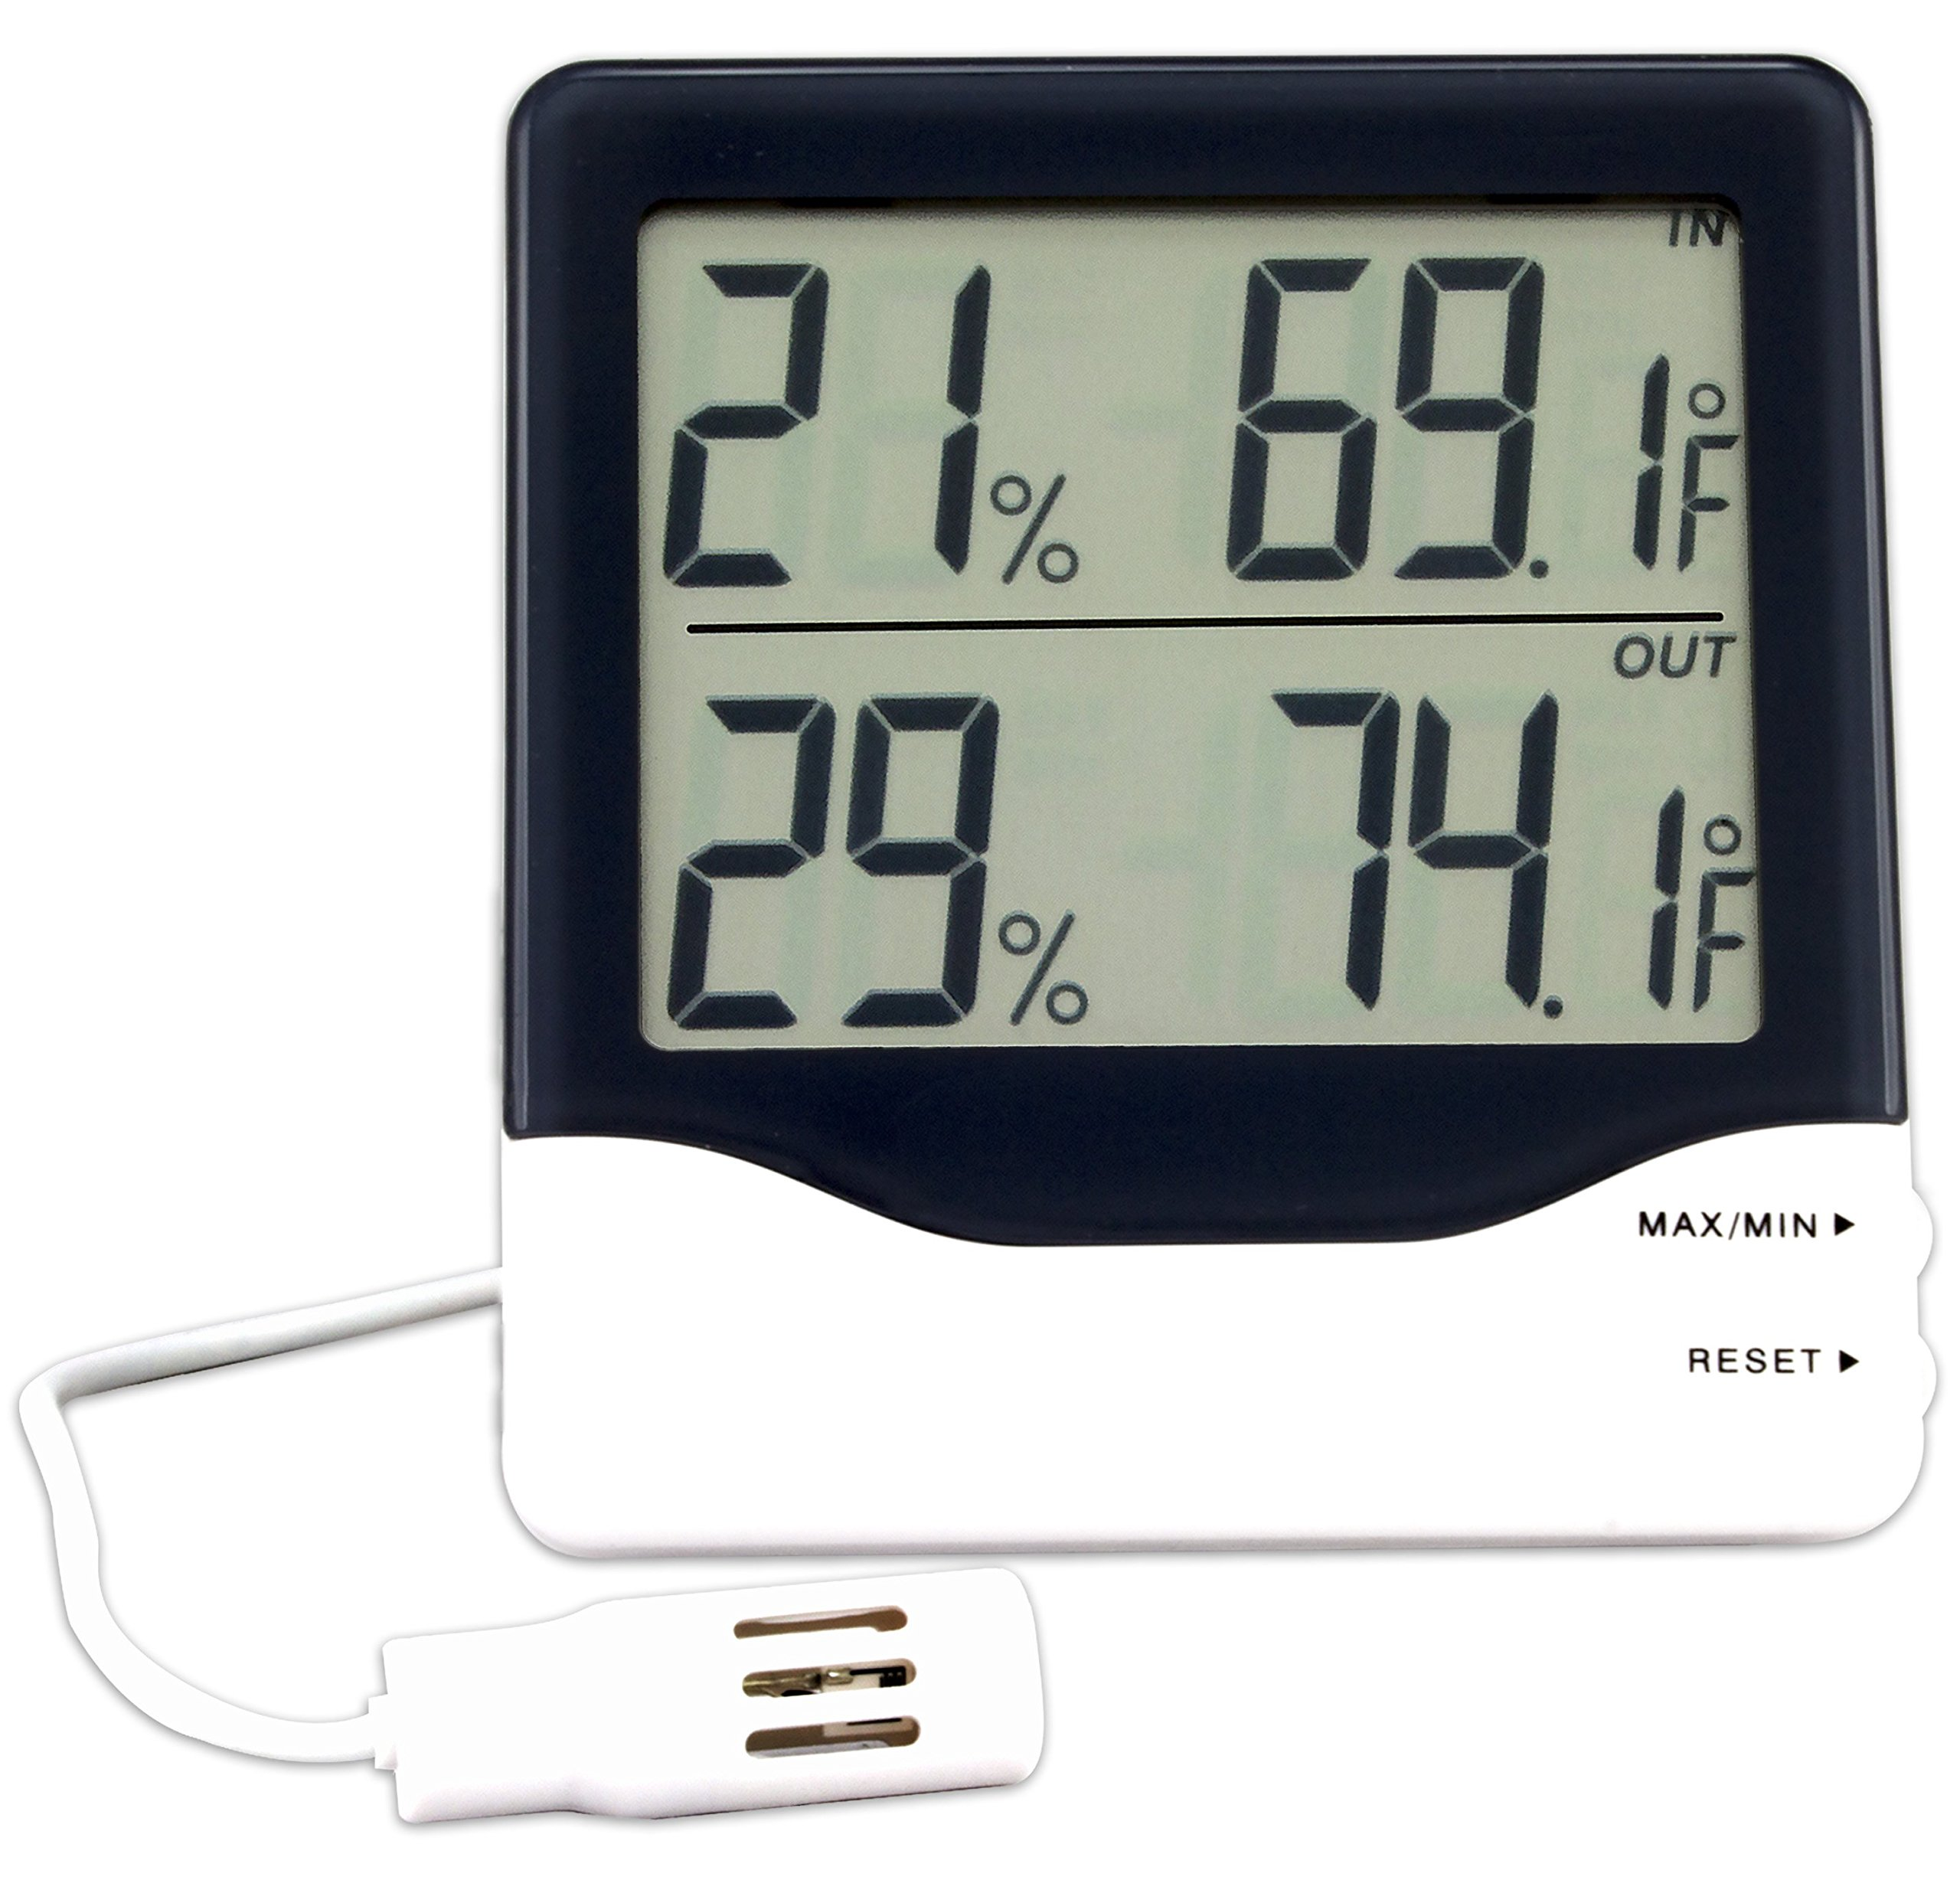 La Crosse Technology 30.5013 Digital Thermo-Hygrometer with Wired probe